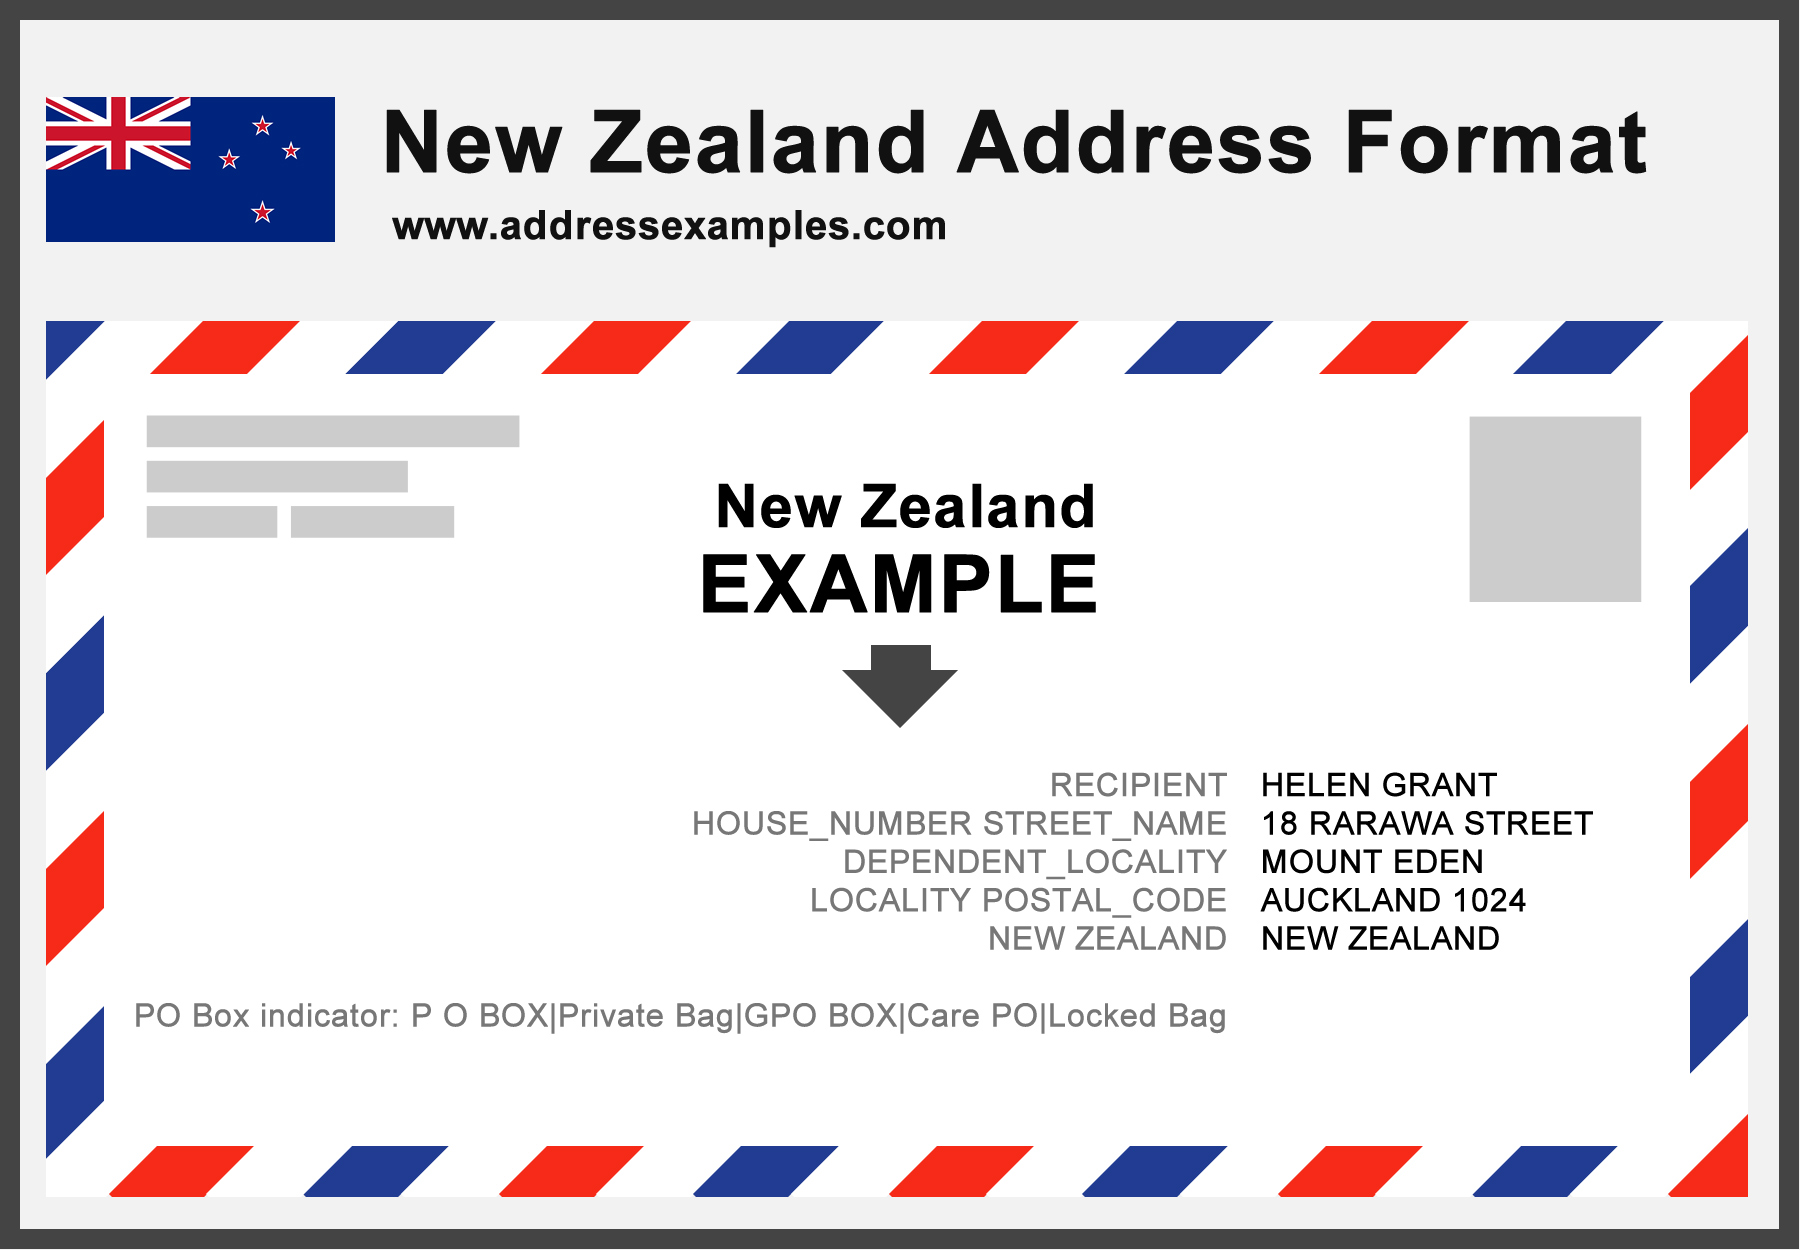 New Zealand Address Format